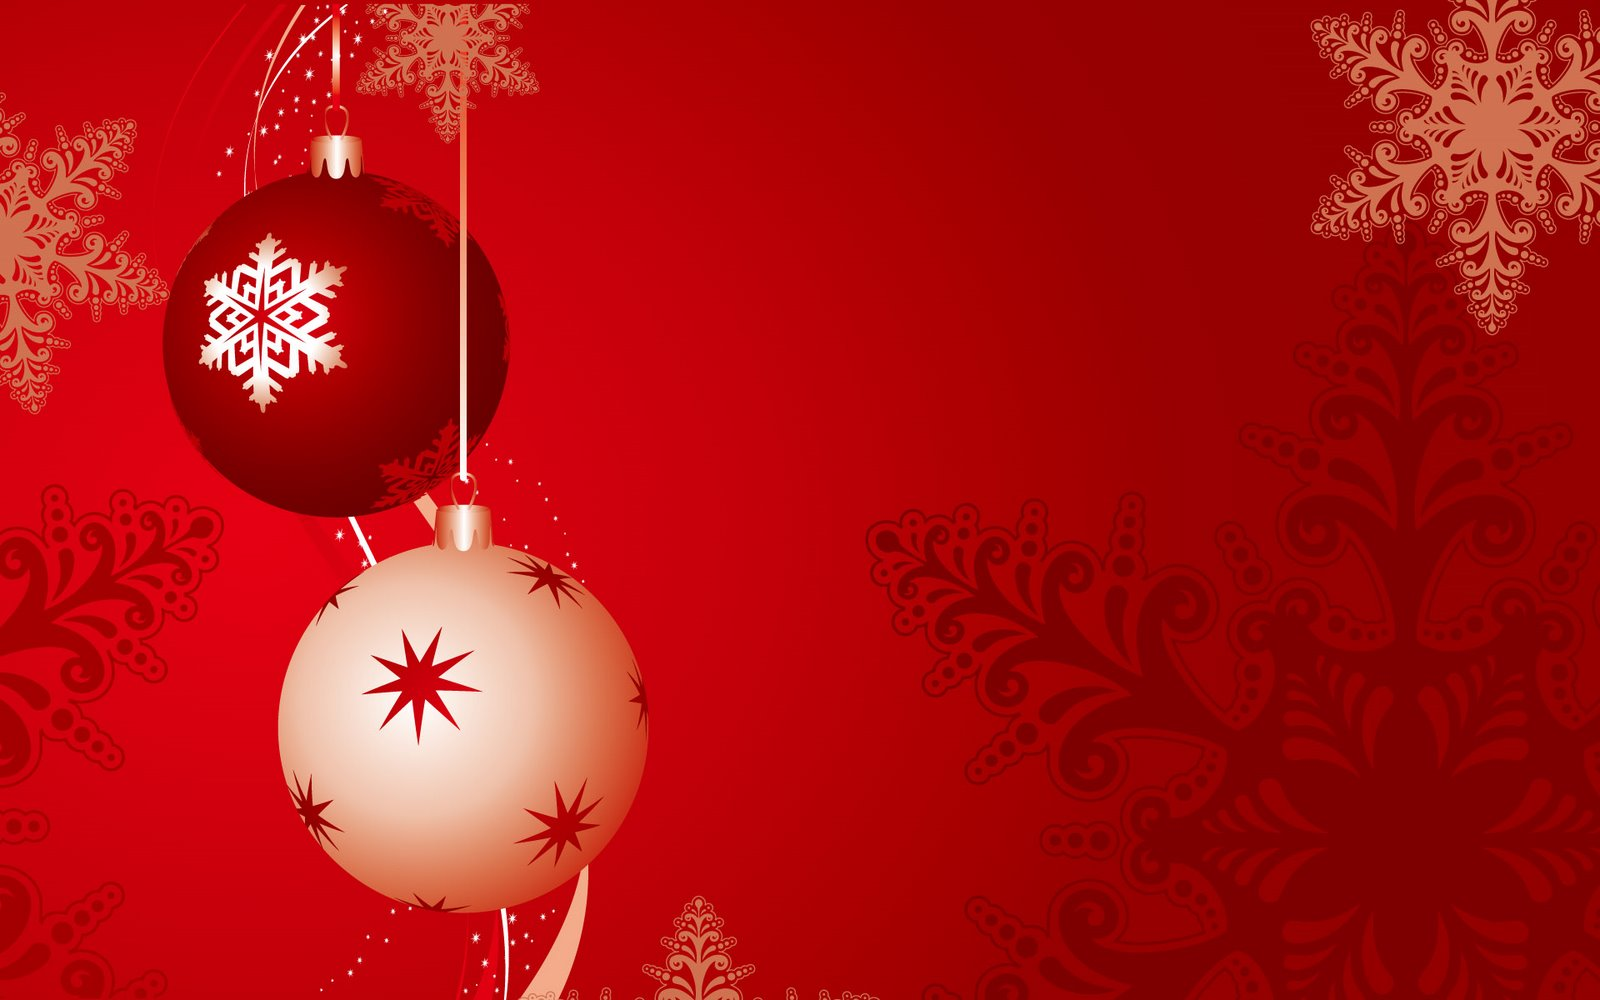 wallpapers 3d christmas wallpapers wallpaper wallpapers 1600x1000